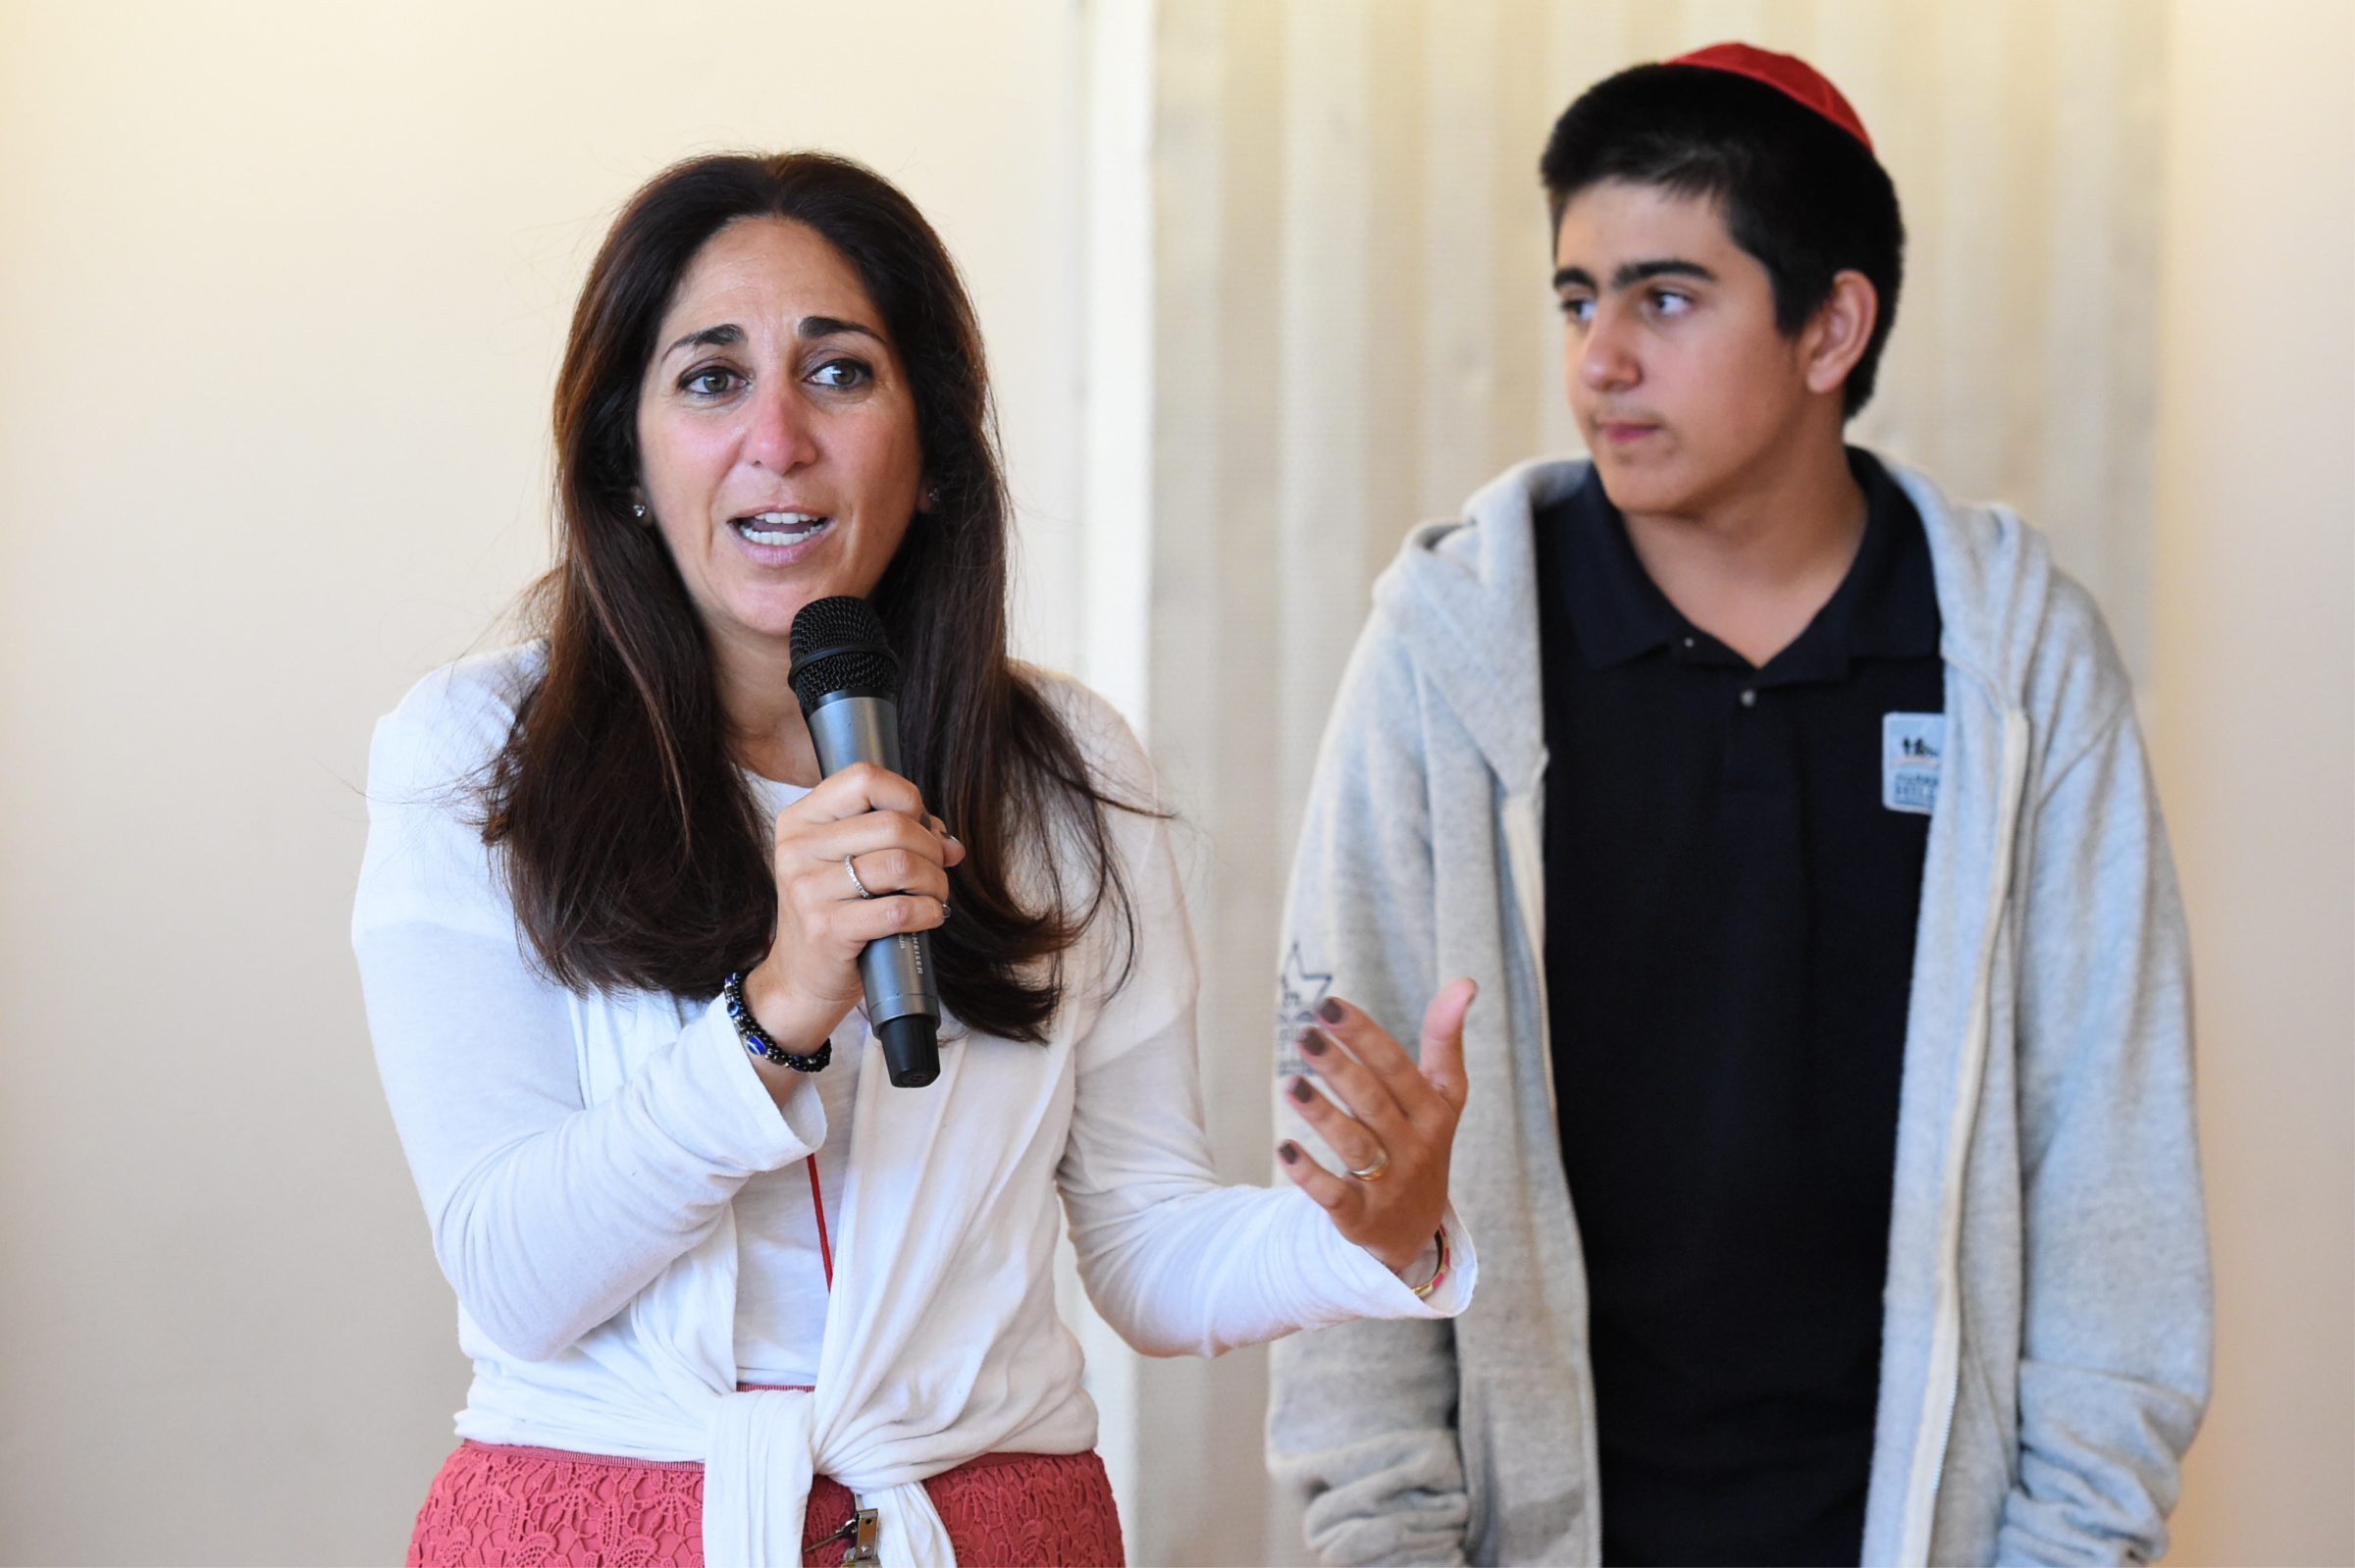 Florette Benhamou Notification Florette Benhamou shares some thoughts with the audience as her son Dylan, a Harkham Hillel seventh-grader, looks on.